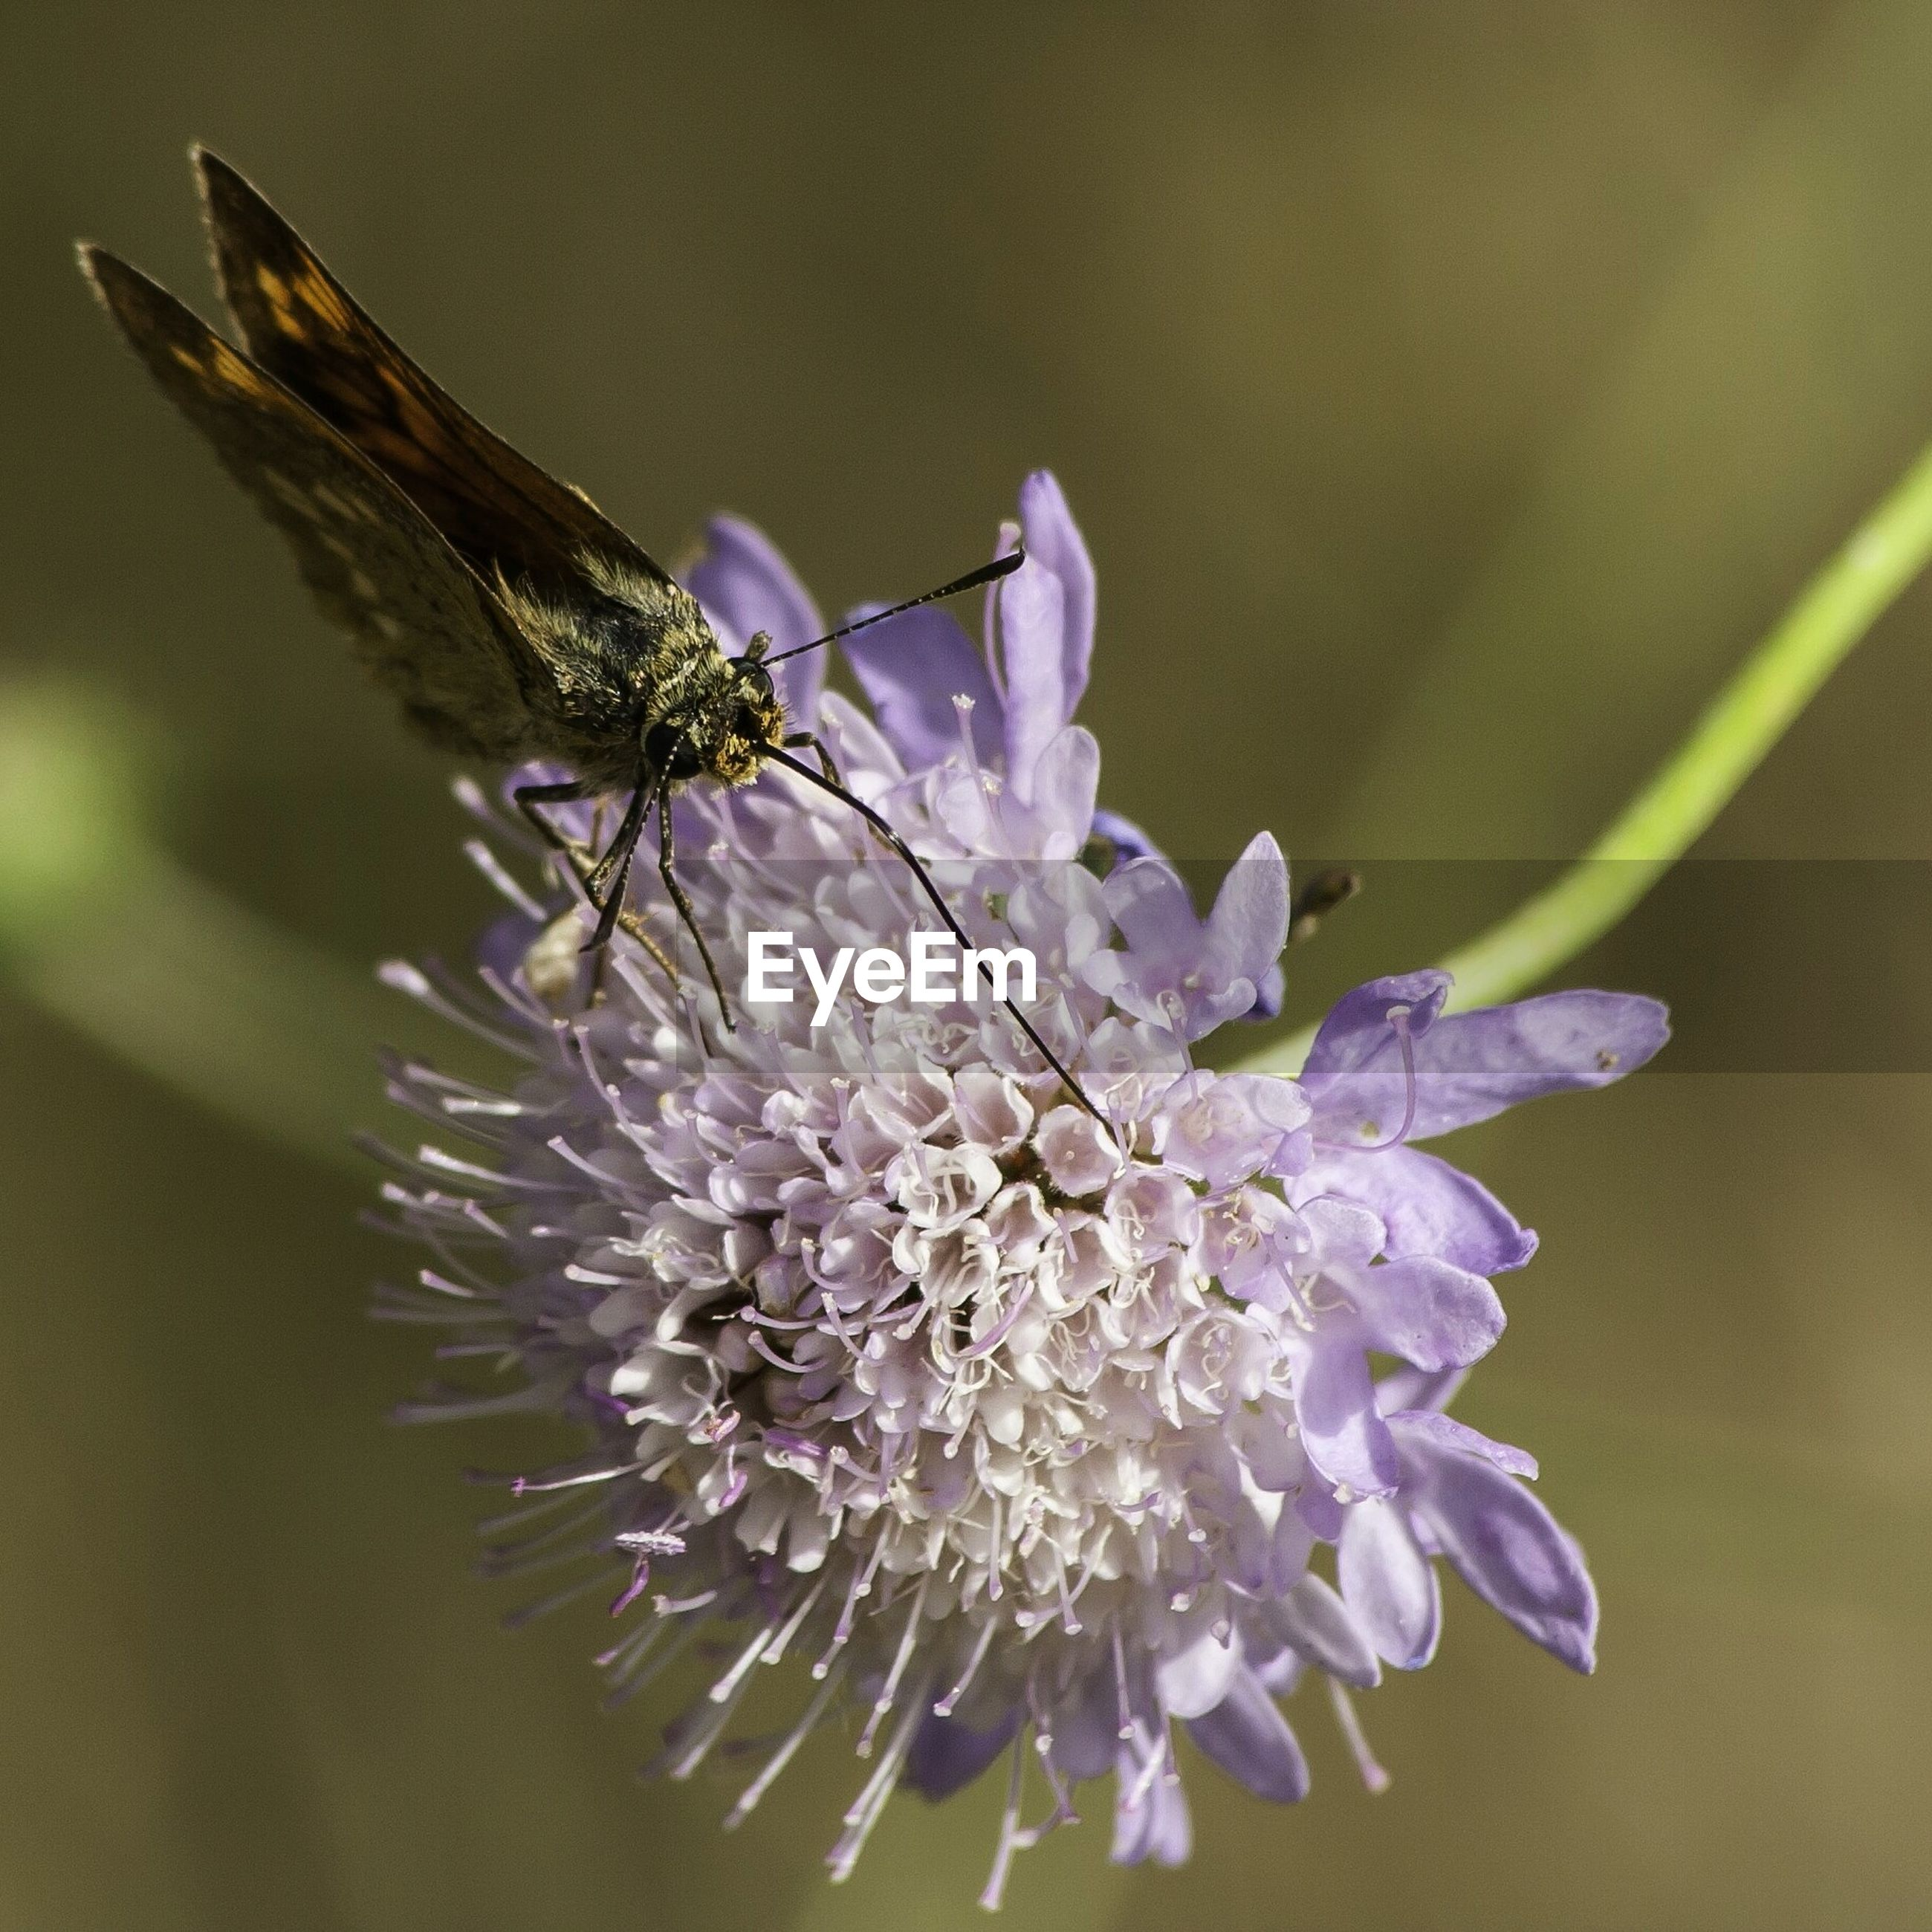 flower, fragility, freshness, close-up, petal, flower head, beauty in nature, growth, focus on foreground, nature, selective focus, plant, insect, purple, pollen, blooming, stamen, single flower, no people, blossom